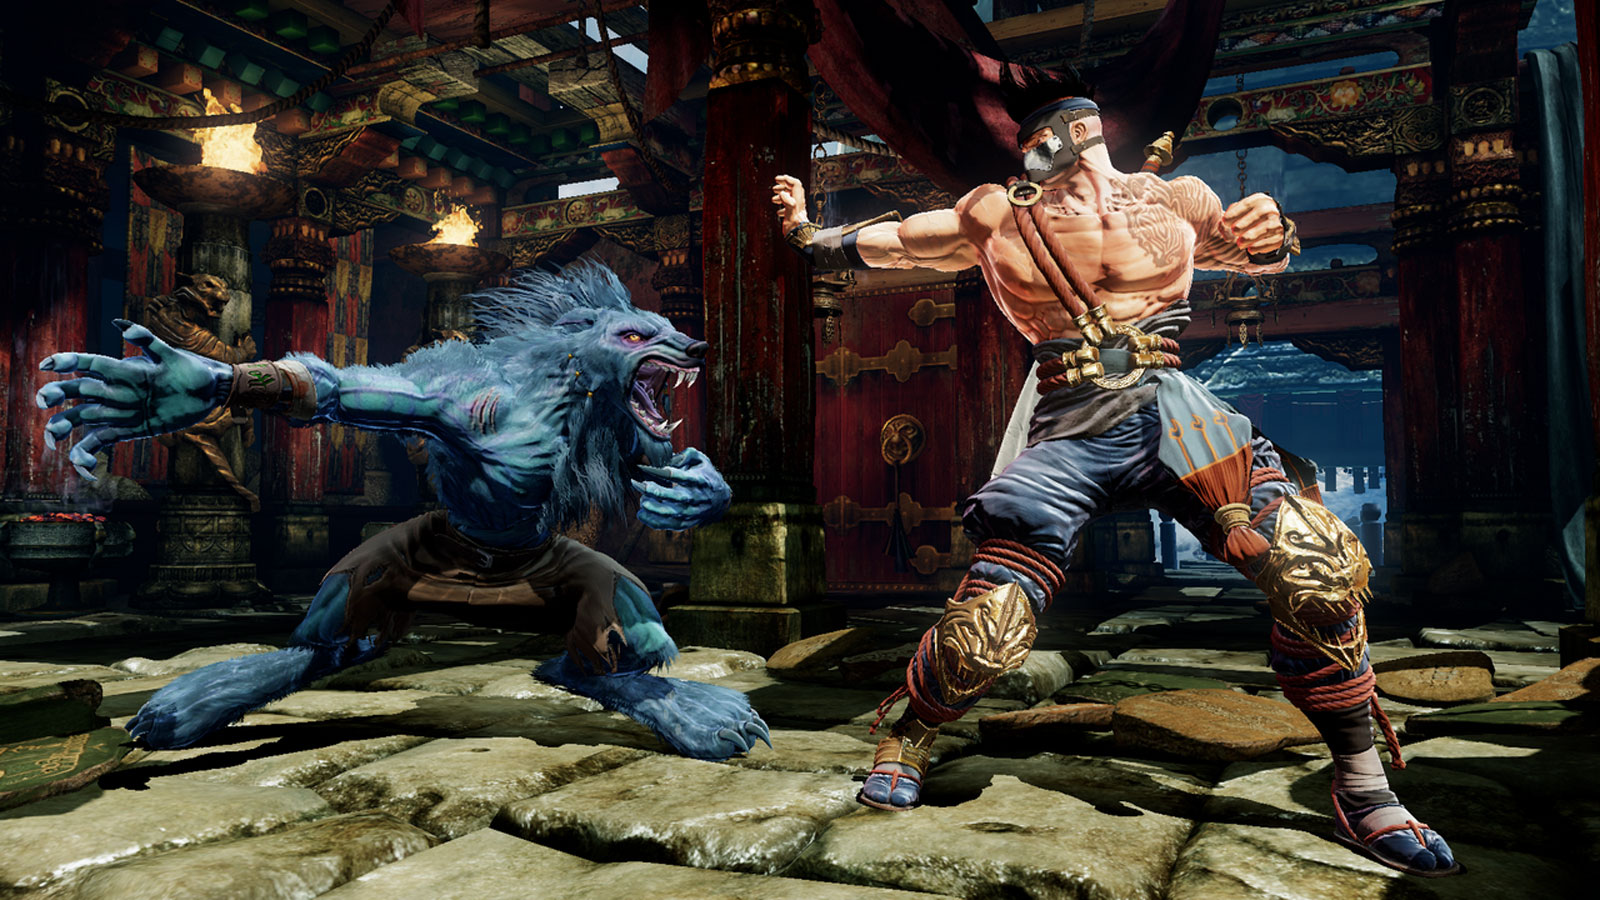 photo image 'Killer Instinct' will be available through Steam